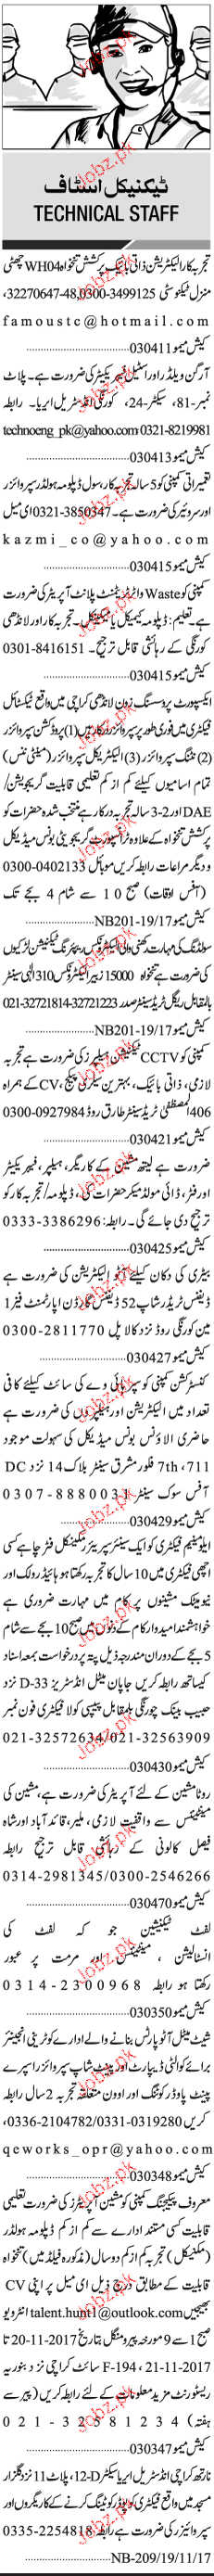 Sunday Jang Classified Technical Staff Job Opportunity